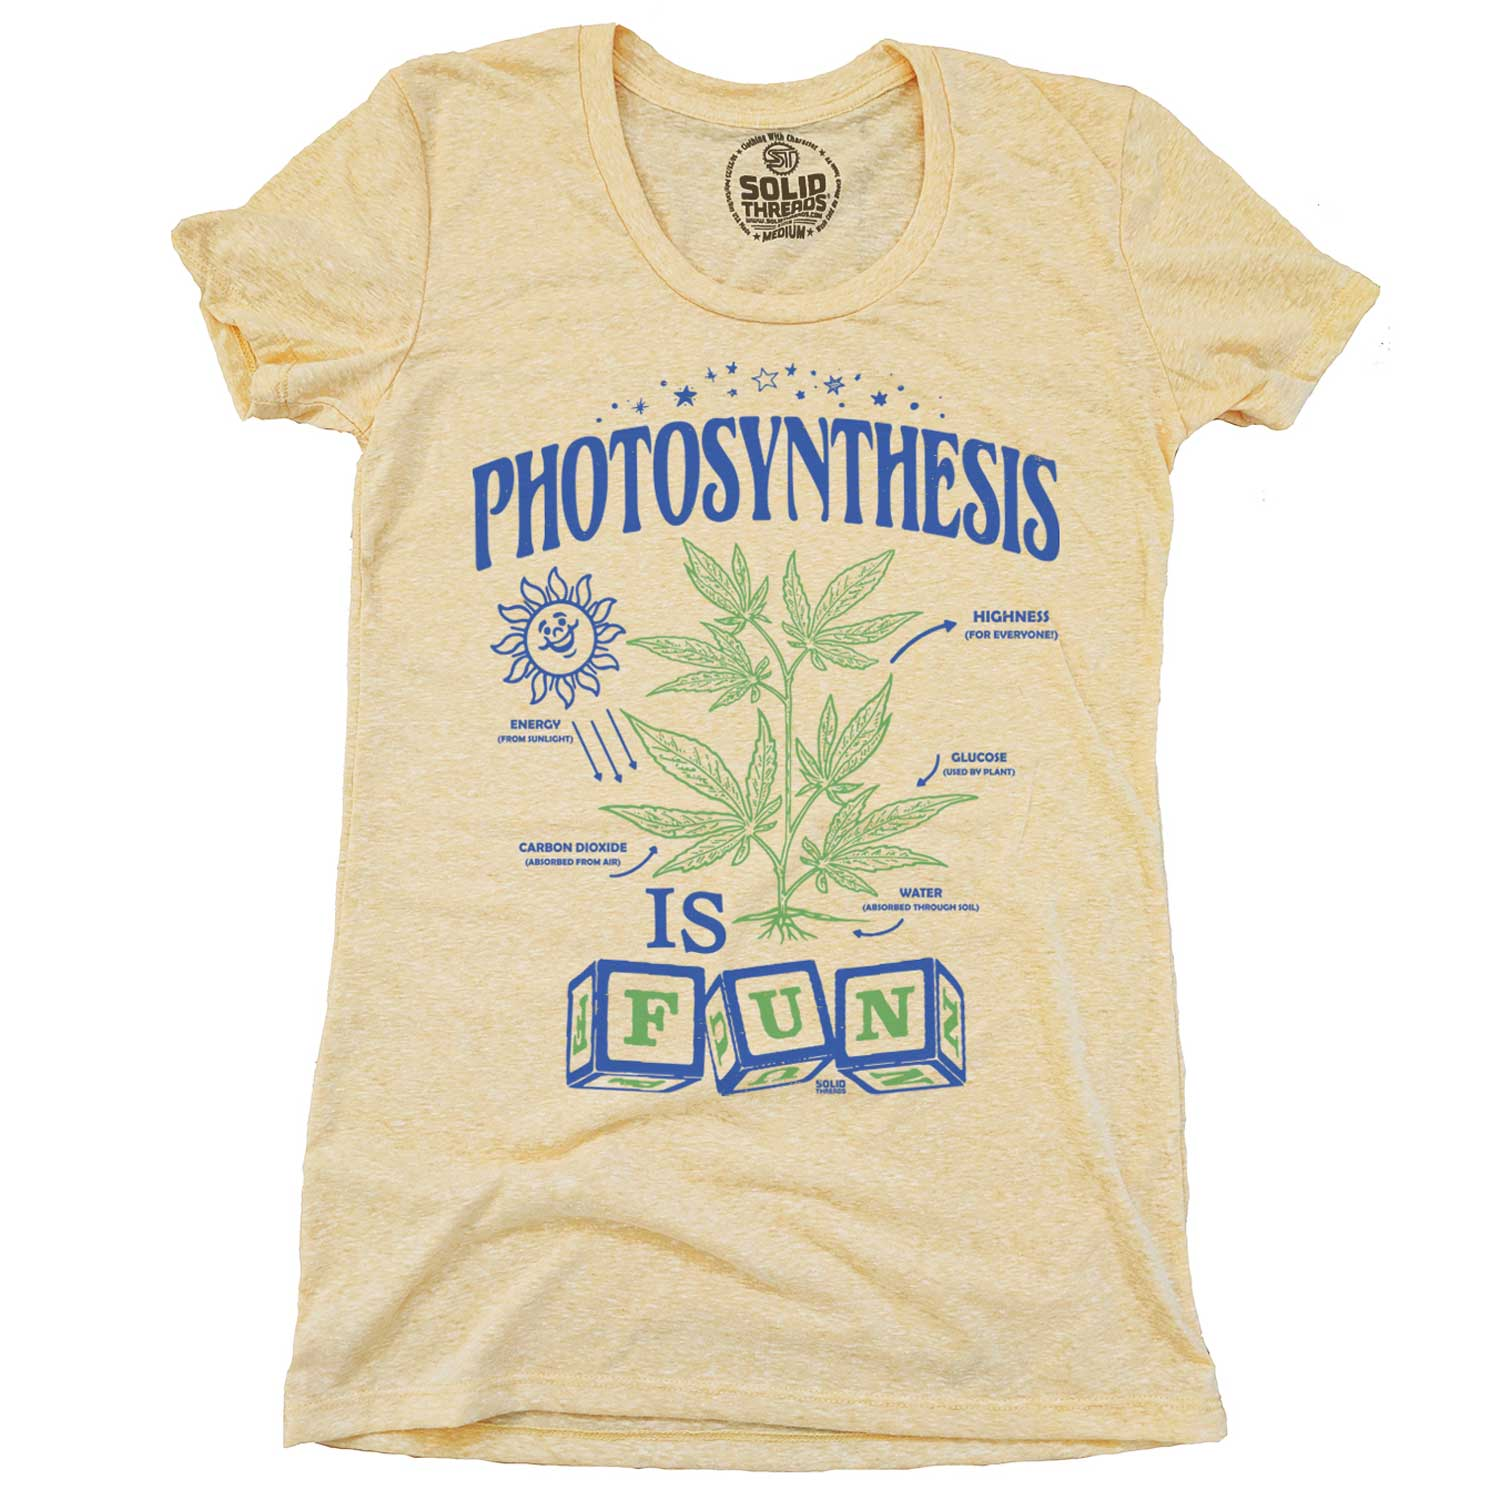 Women's Photosynthesis Vintage Inspired Scoopneck Tee-shirt with retro, marijuana graphic | Solid Threads